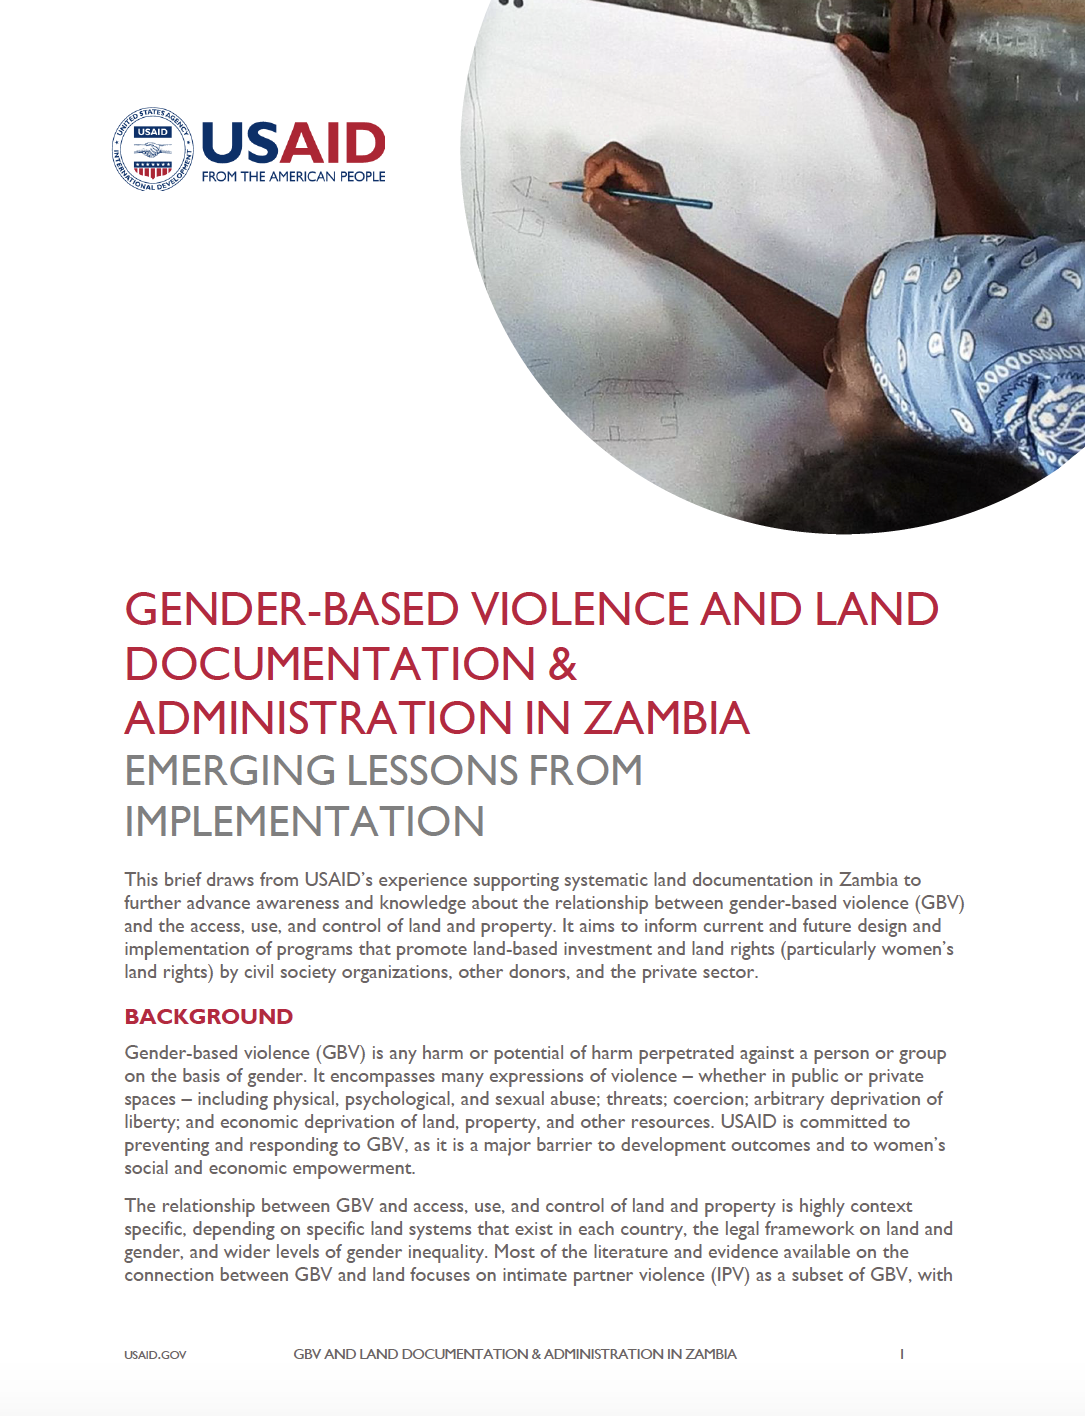 Gender-Based Violence and Land Documentation & Administration in Zambia